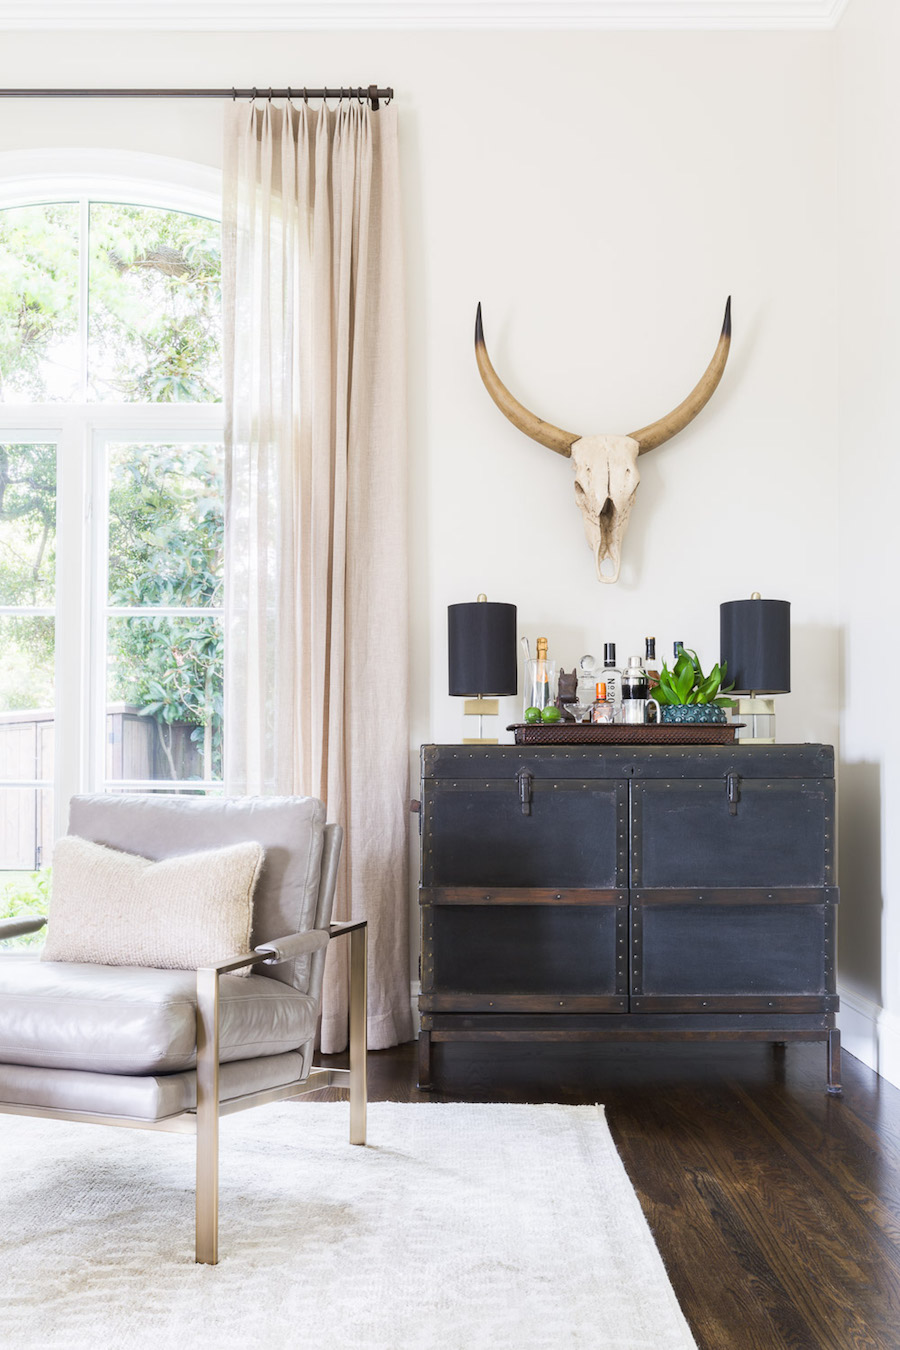 Longhorn Skull in a Living Room by Amanda Barnes